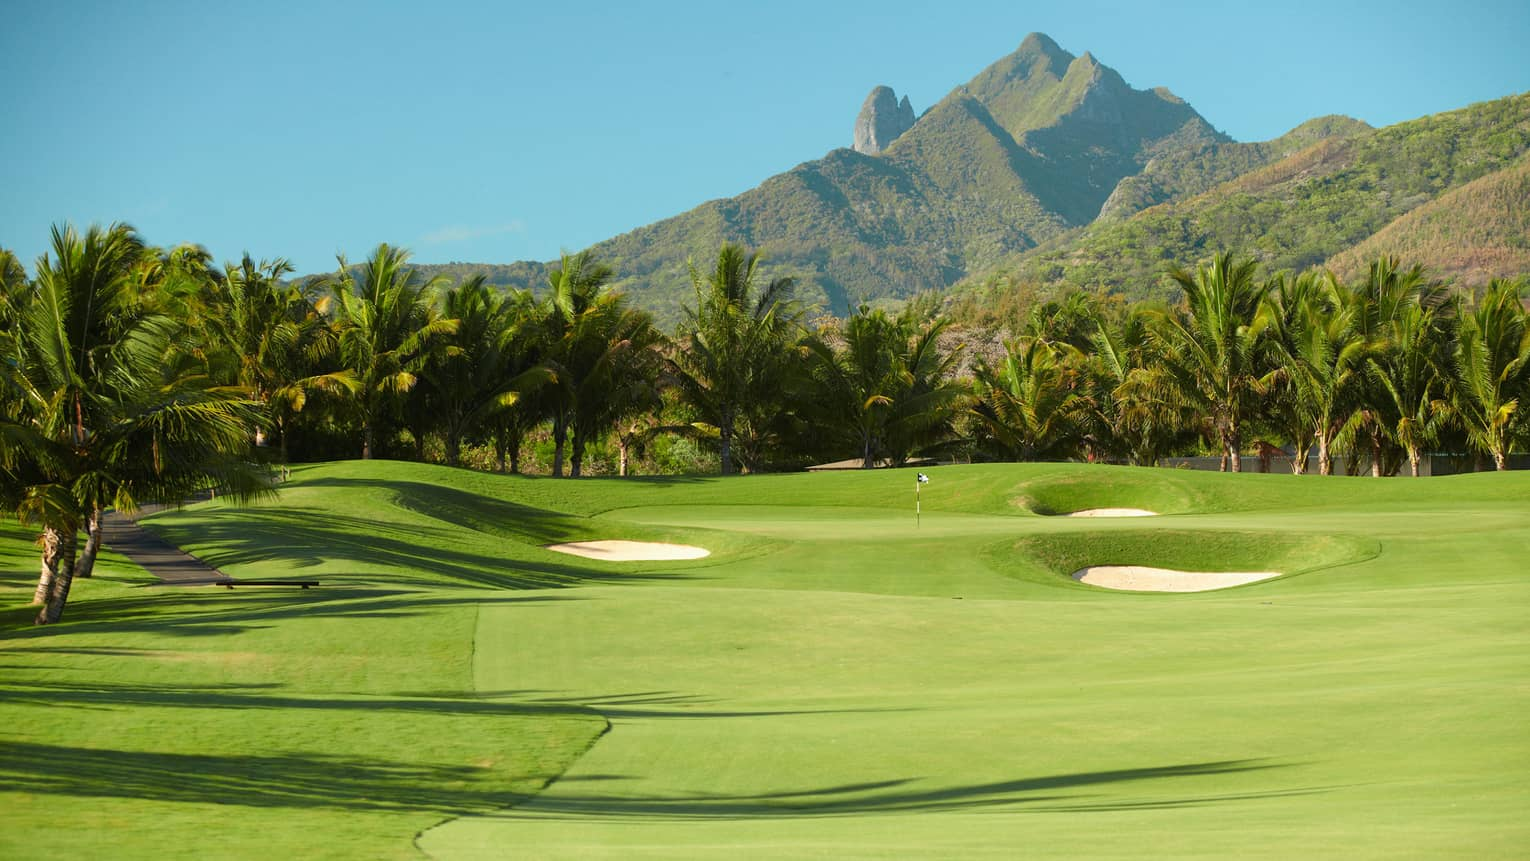 Fifteenth hole rolling golf course green dotted by two sand traps, mountain backdrop